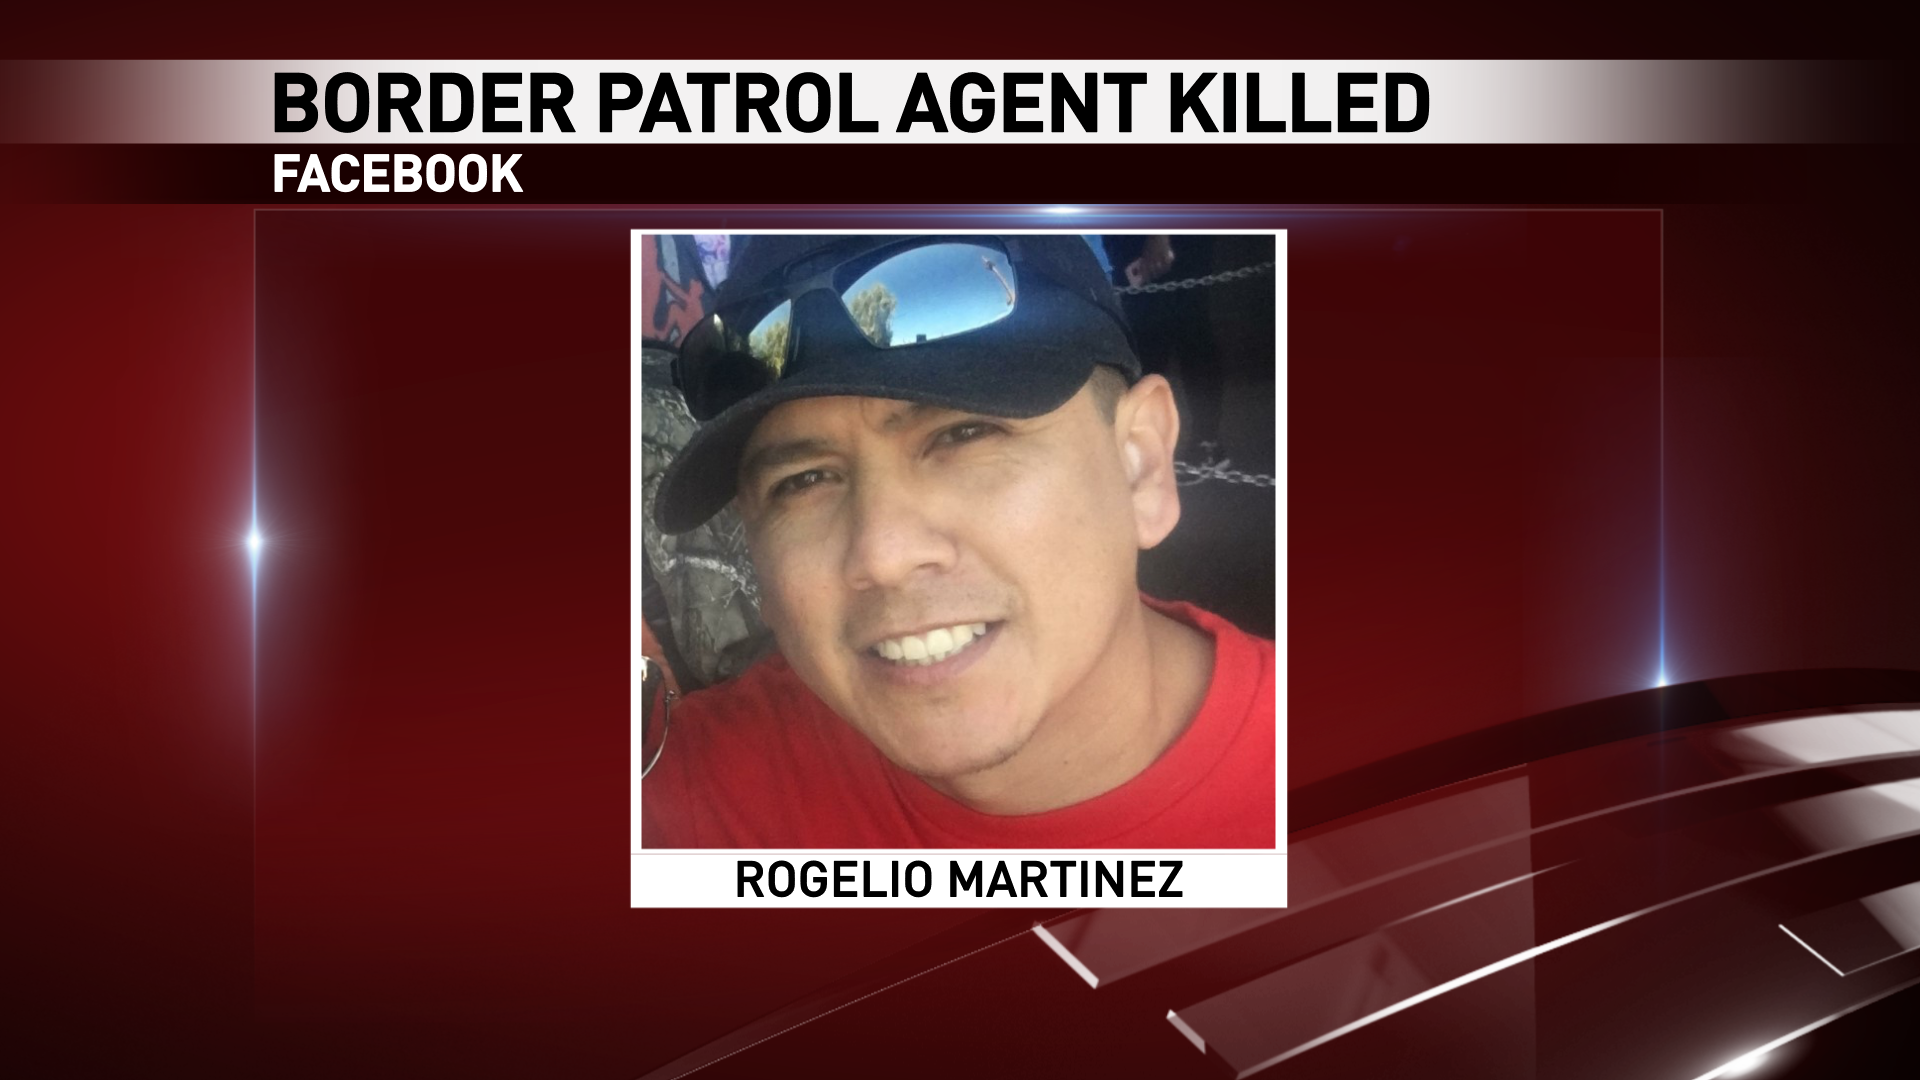 Rogelio Martinez of El Paso. He was killed in an incident while on duty near Van Horn, Texas Sunday, Nov. 19, 2017. (Credit: Facebook)